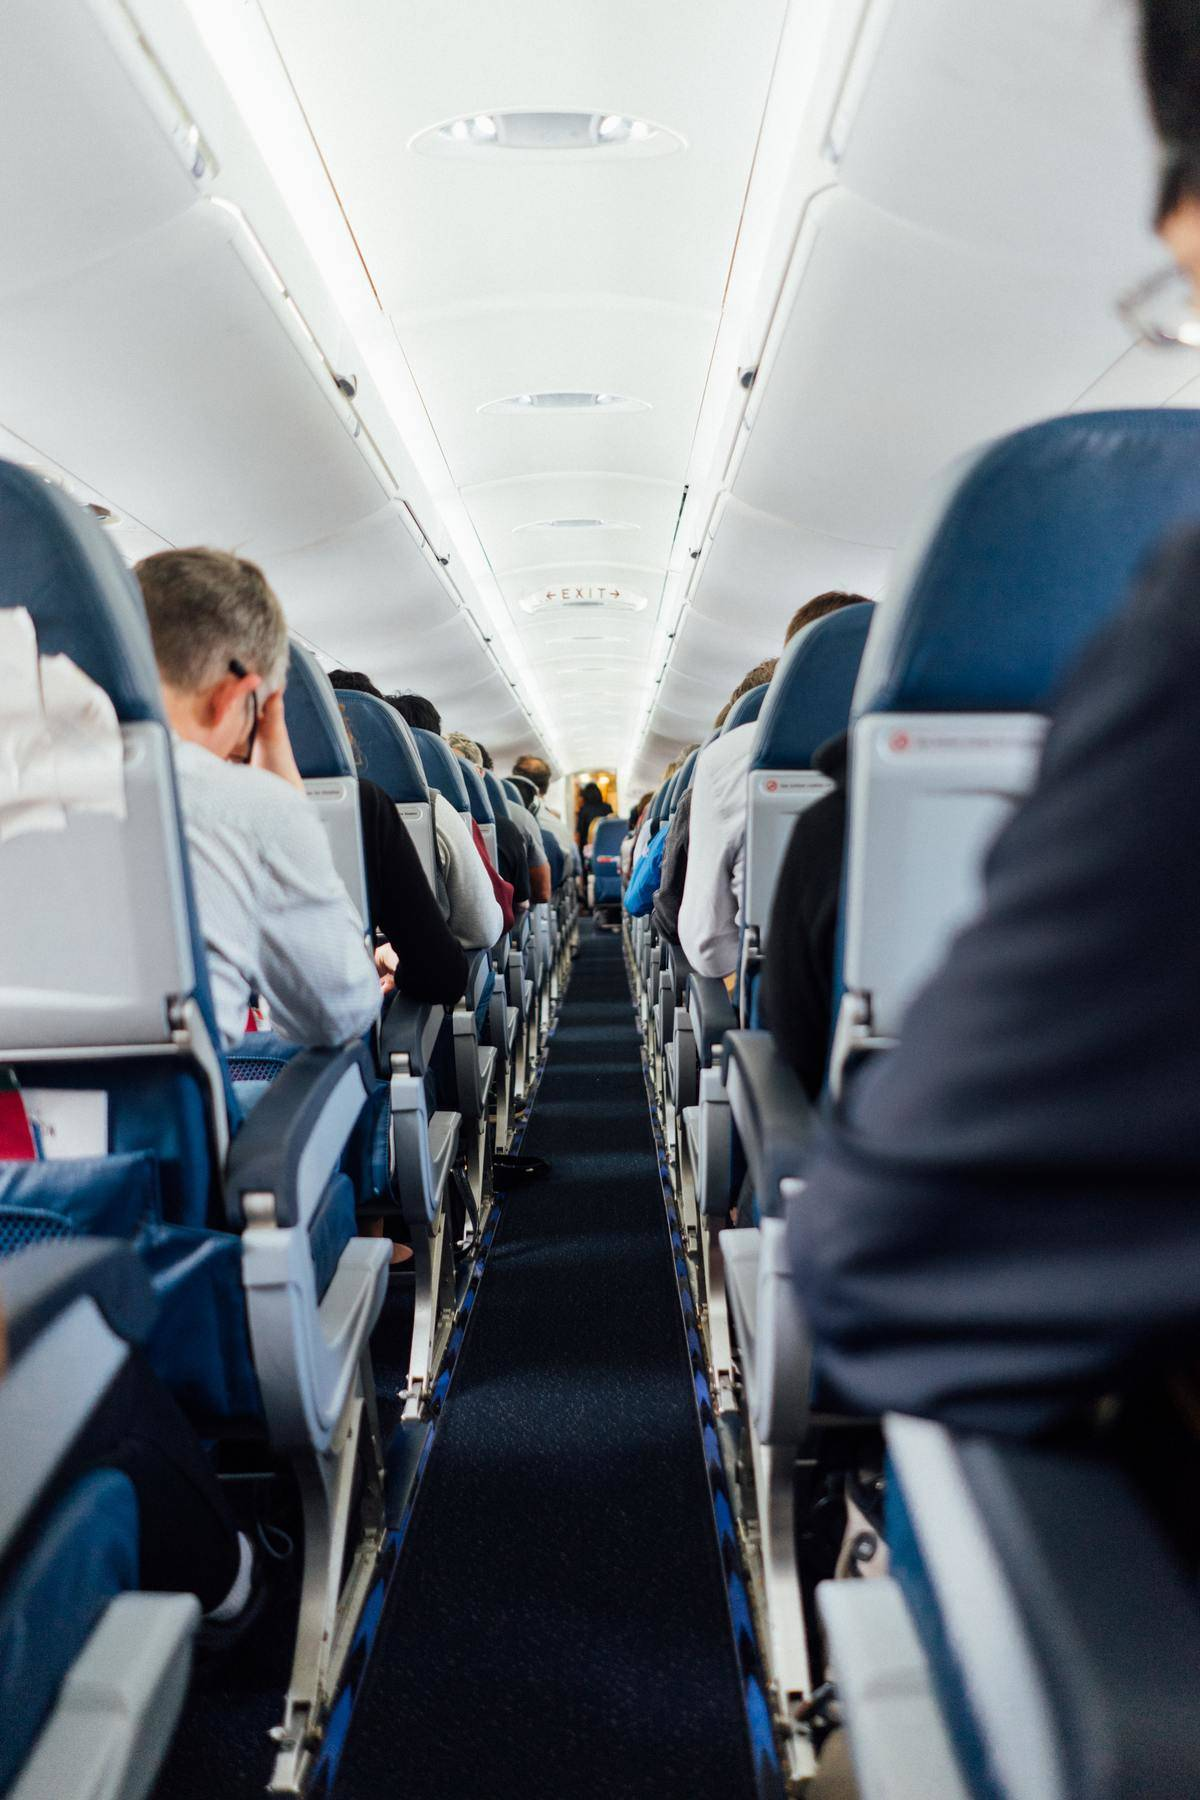 Aisle-view of people sitting inside a plane